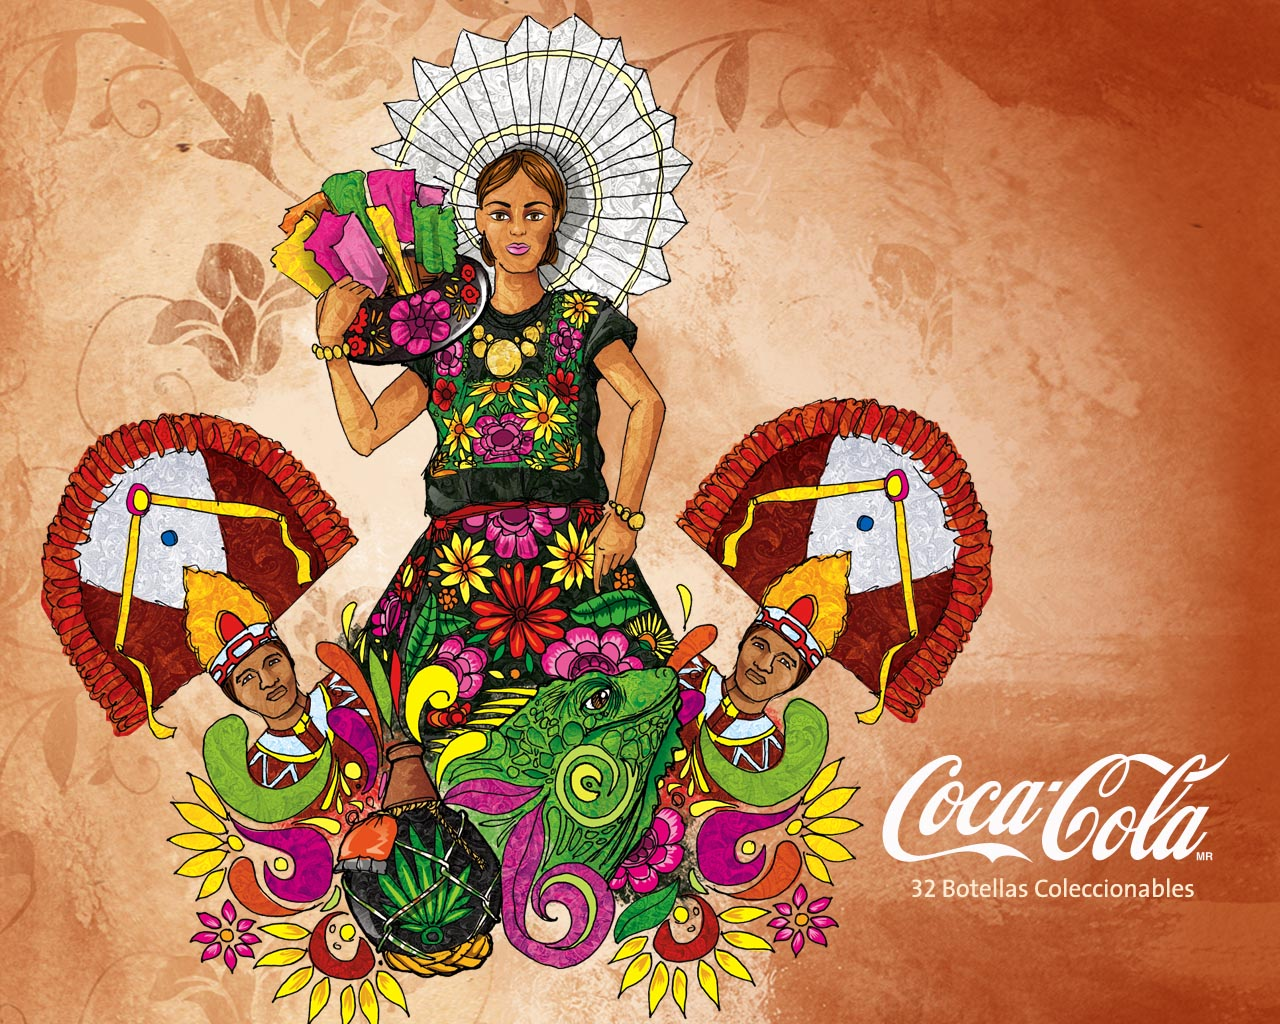 Marrains unemployed graphic designers: Coca Cola Bicentenario, César ...